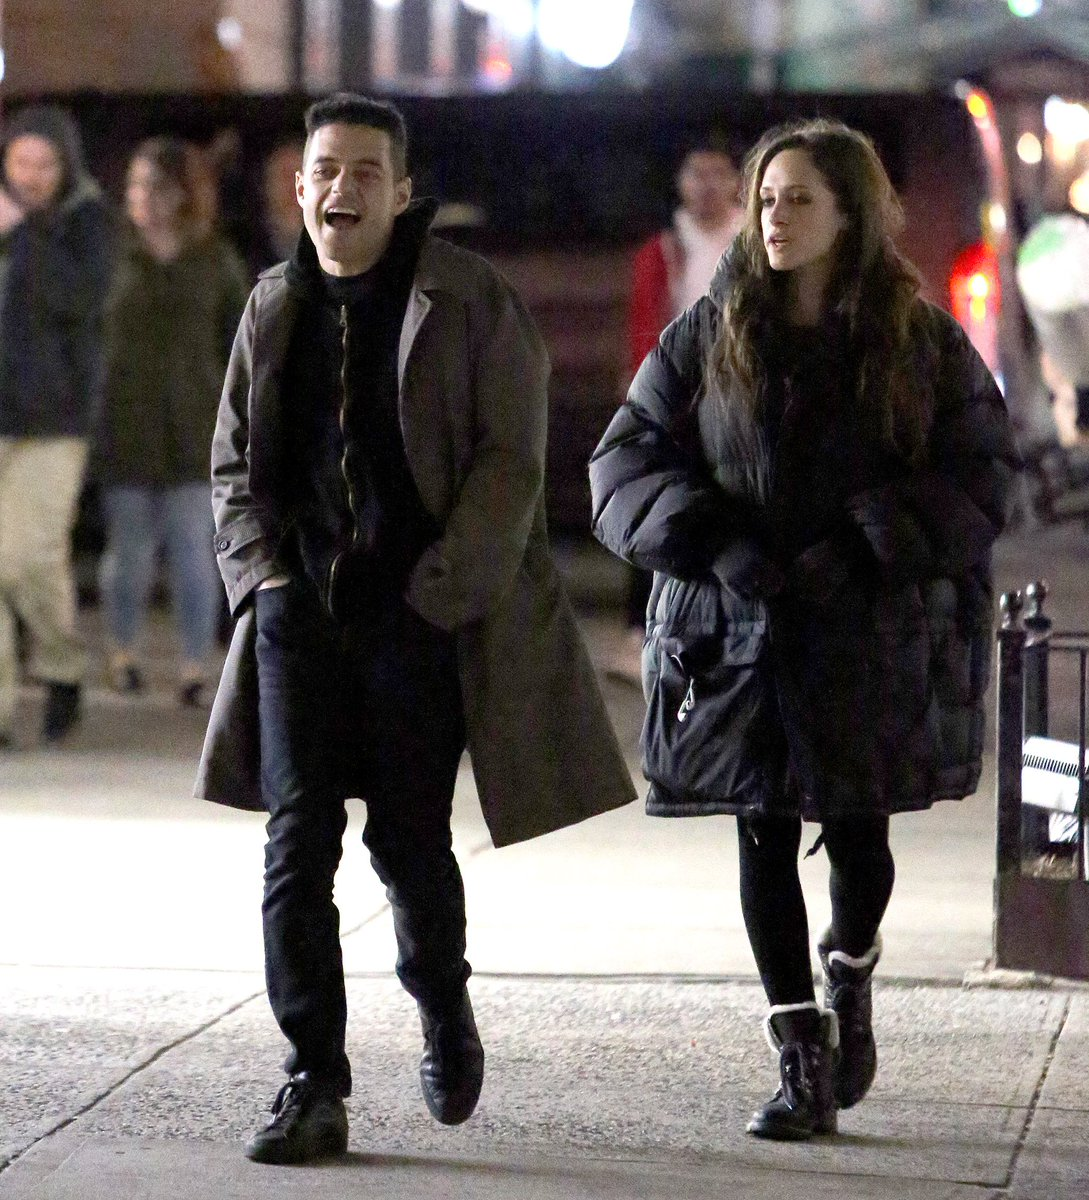 And with the hoodie off &amp; Elliot&#39;s hair is officially back!!! @ItsRamiMalek &amp; @carlychaikin filming last night (March 14). #MrRobot<br>http://pic.twitter.com/8TDGNRQDJi